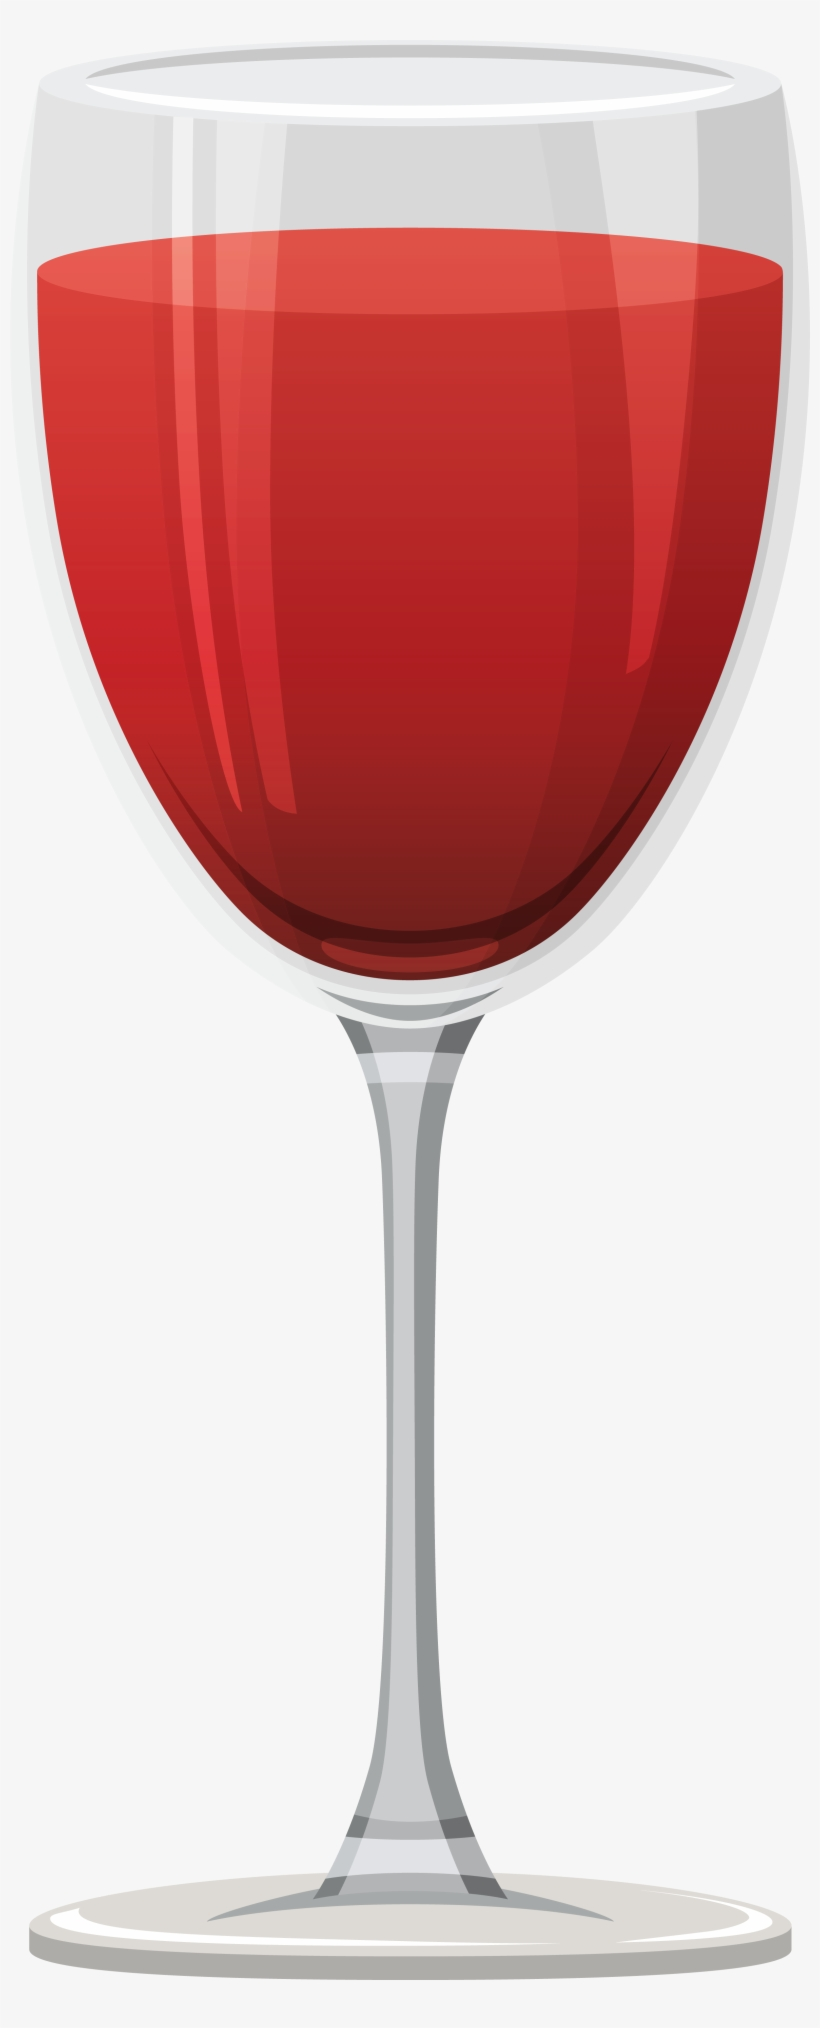 hight resolution of wine glasses clipart transparent background wine glass clipart png